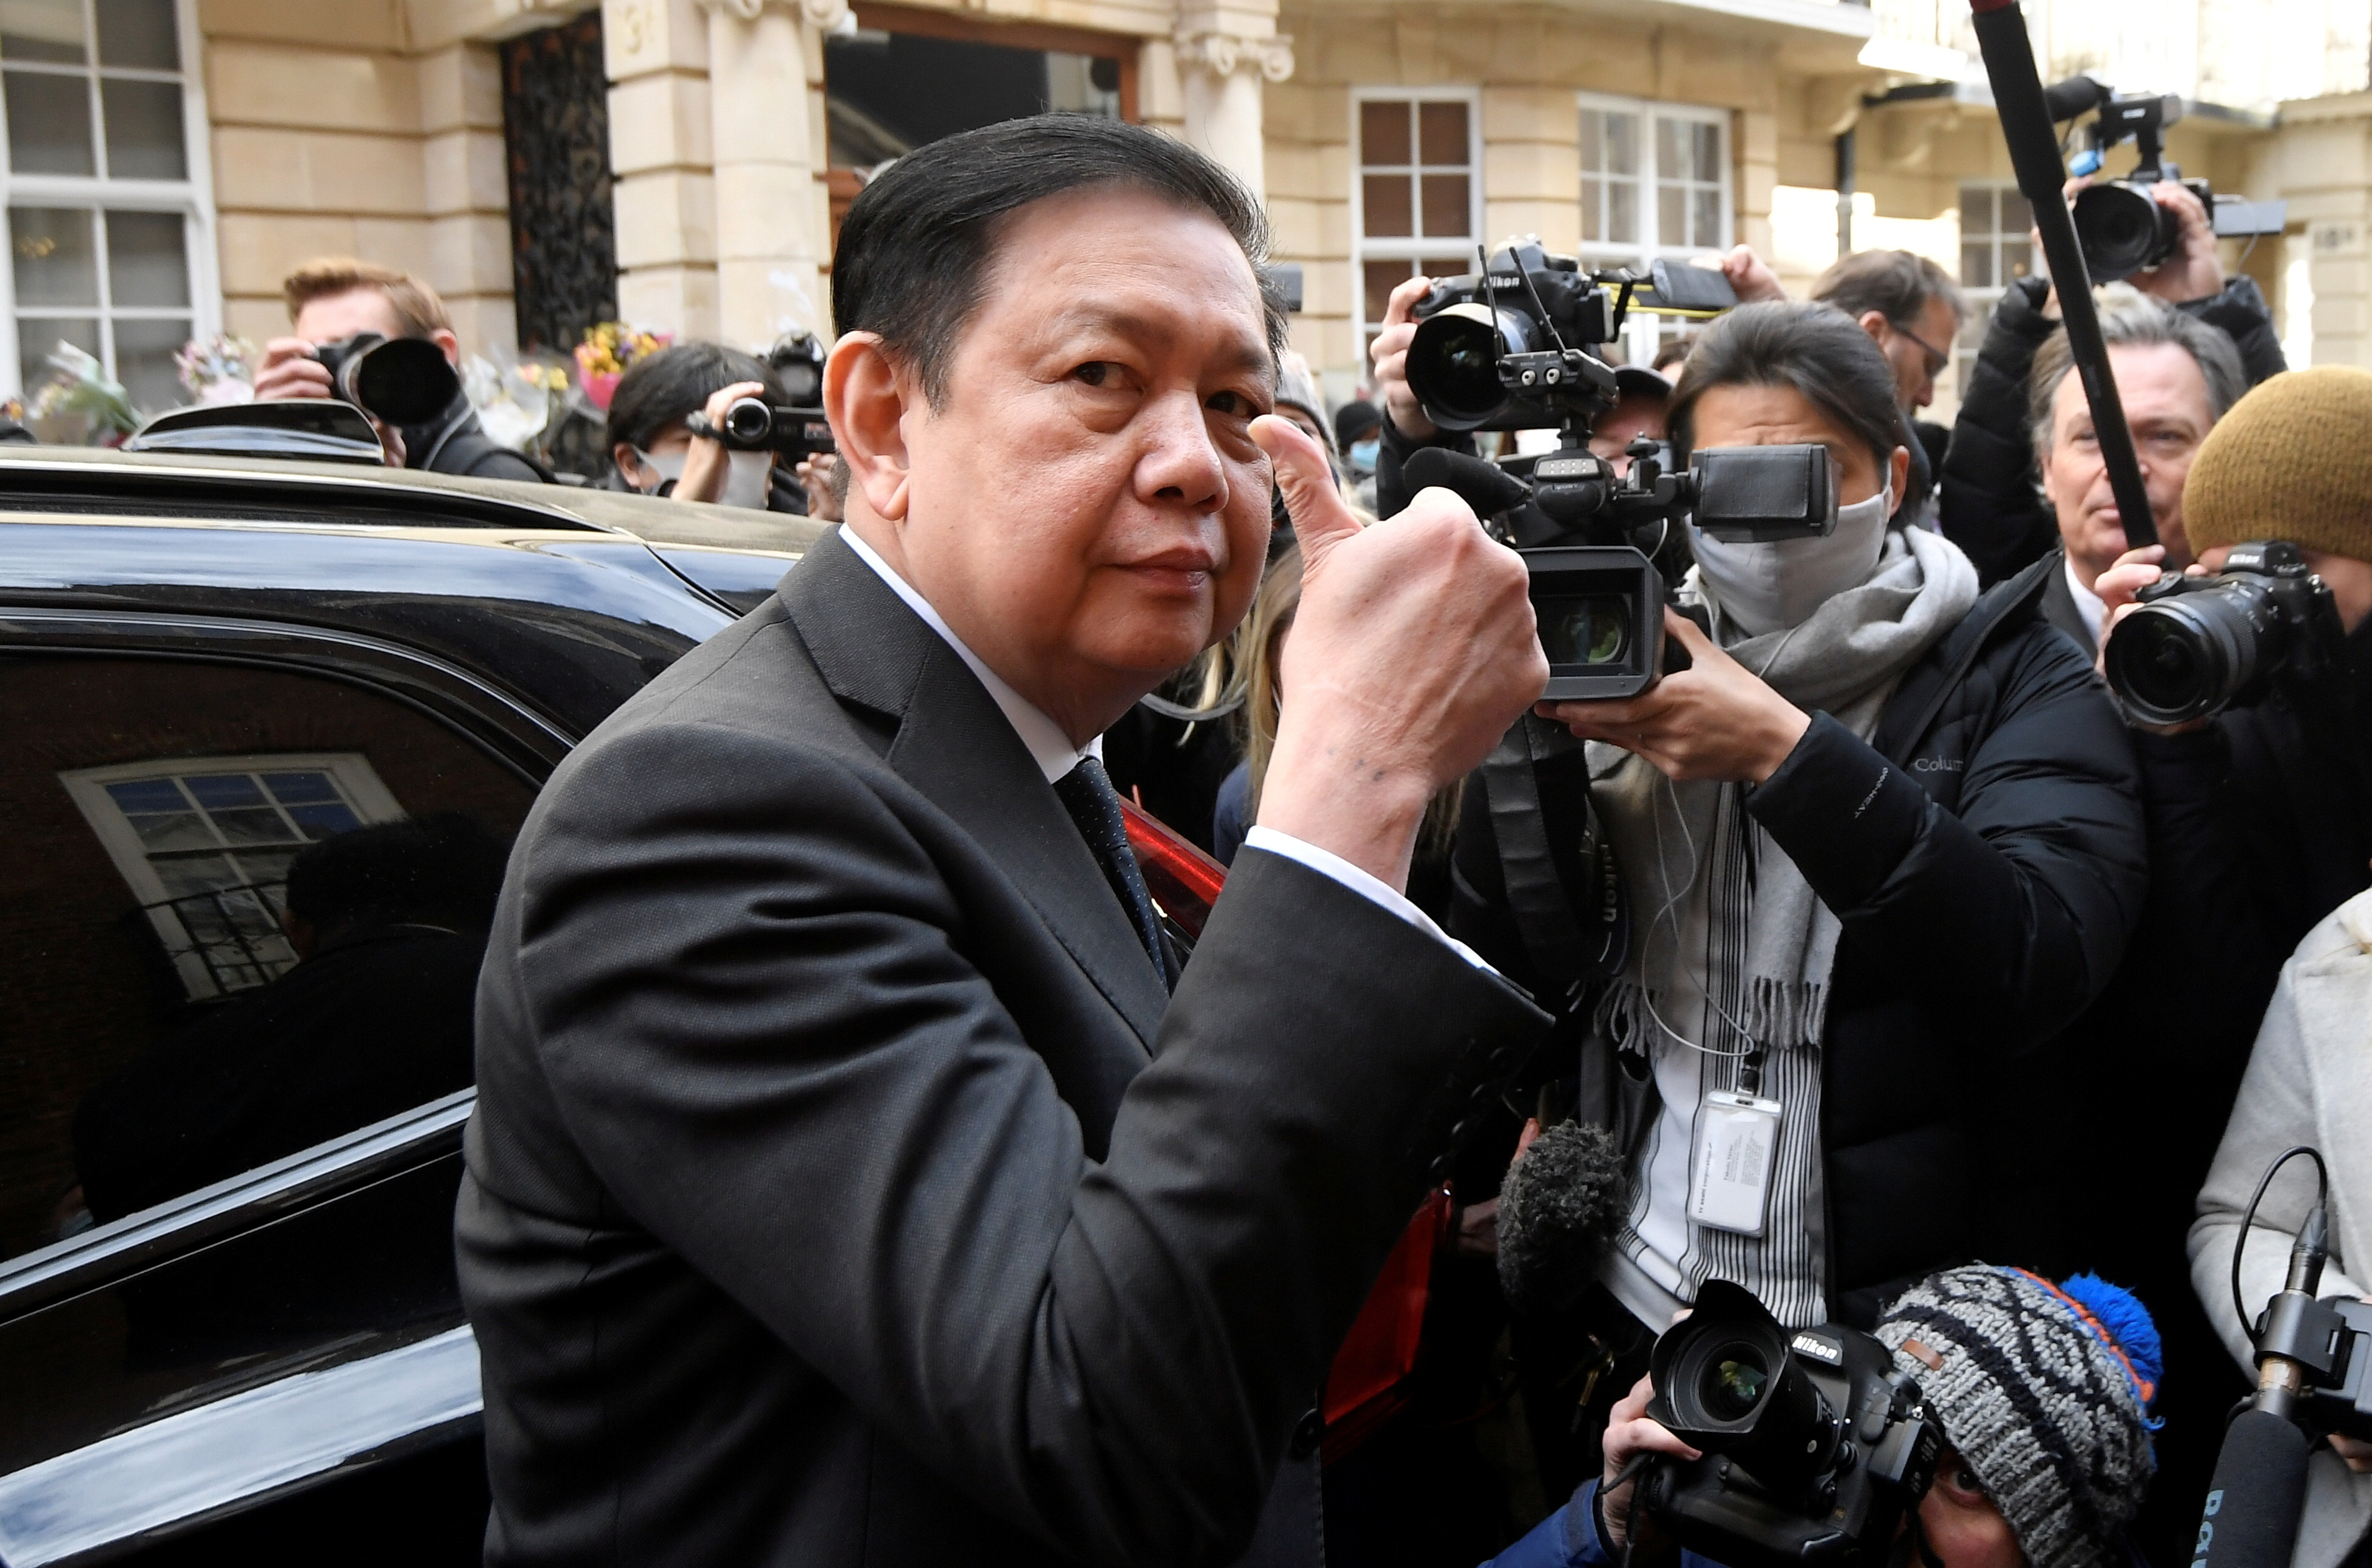 Myanmar's ambassador Kyaw Zwar Minn gestures outside the Myanmar Embassy, after he was locked out of the embassy, and sources said his deputy had shut him out of the building and taken charge on behalf of the military, in London, Britain, April 8, 2021. REUTERS/Toby Melville/File Photo